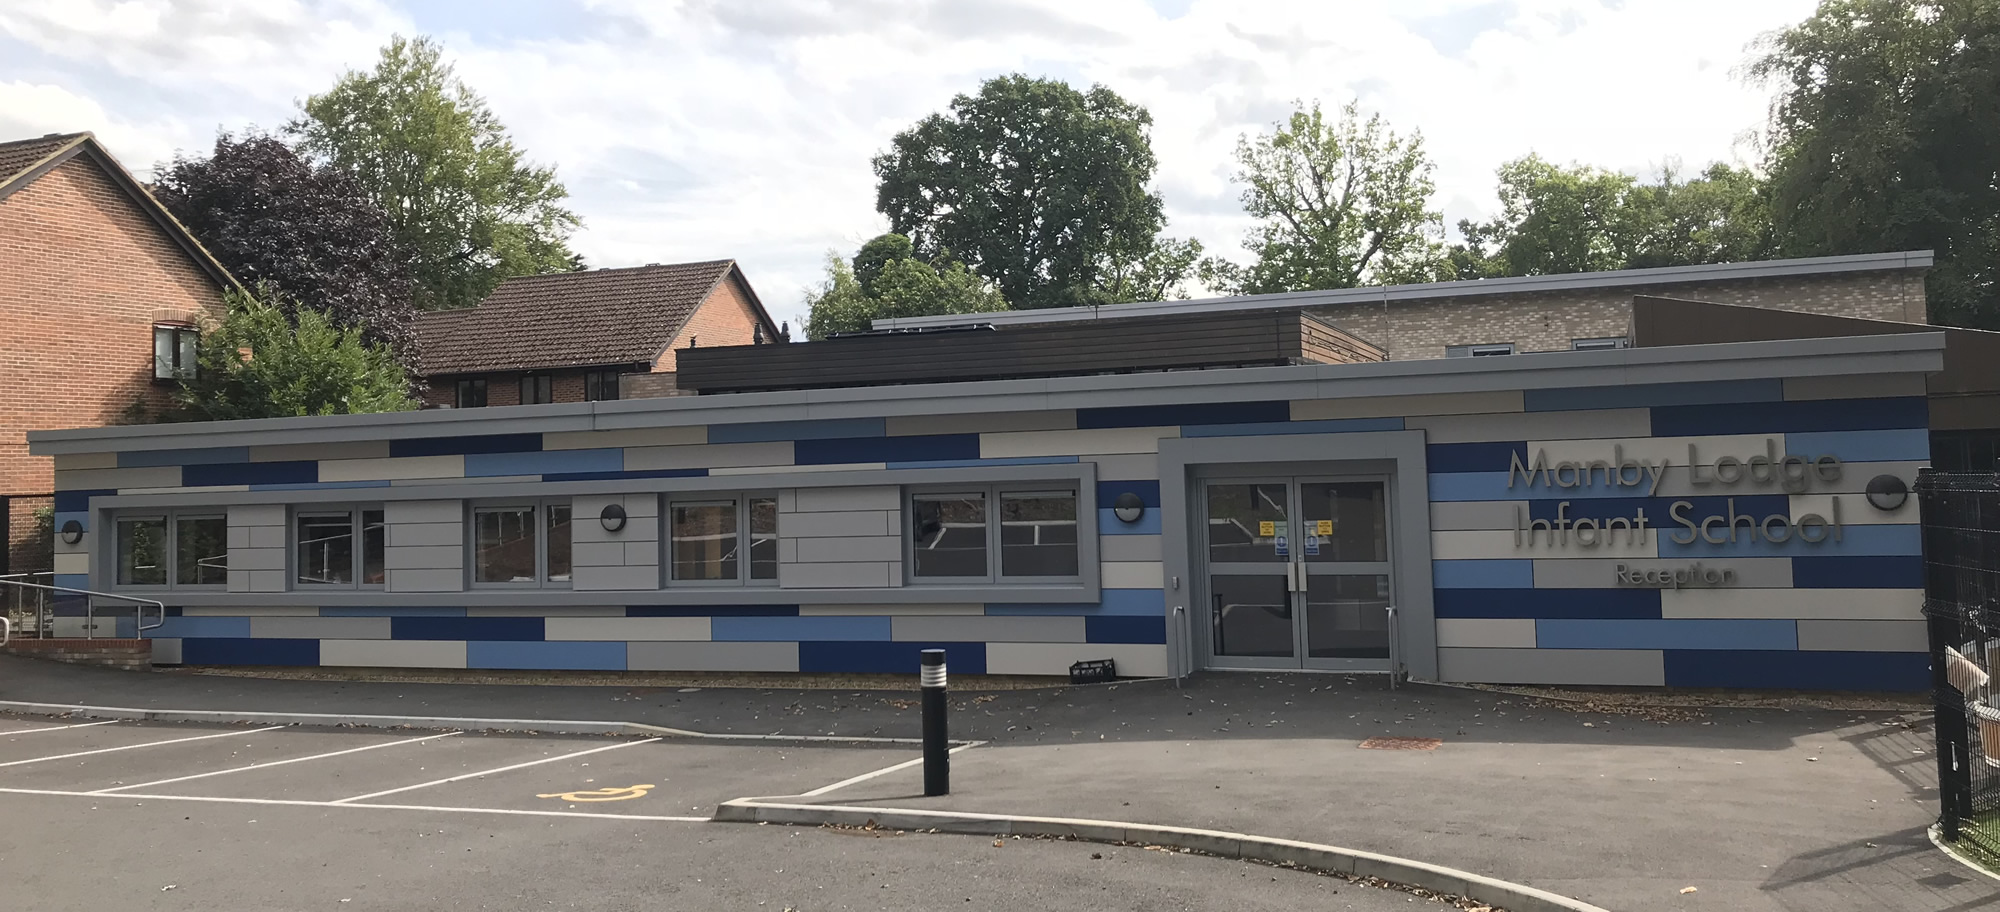 Manby Lodge Infant School Weybridge Surrey